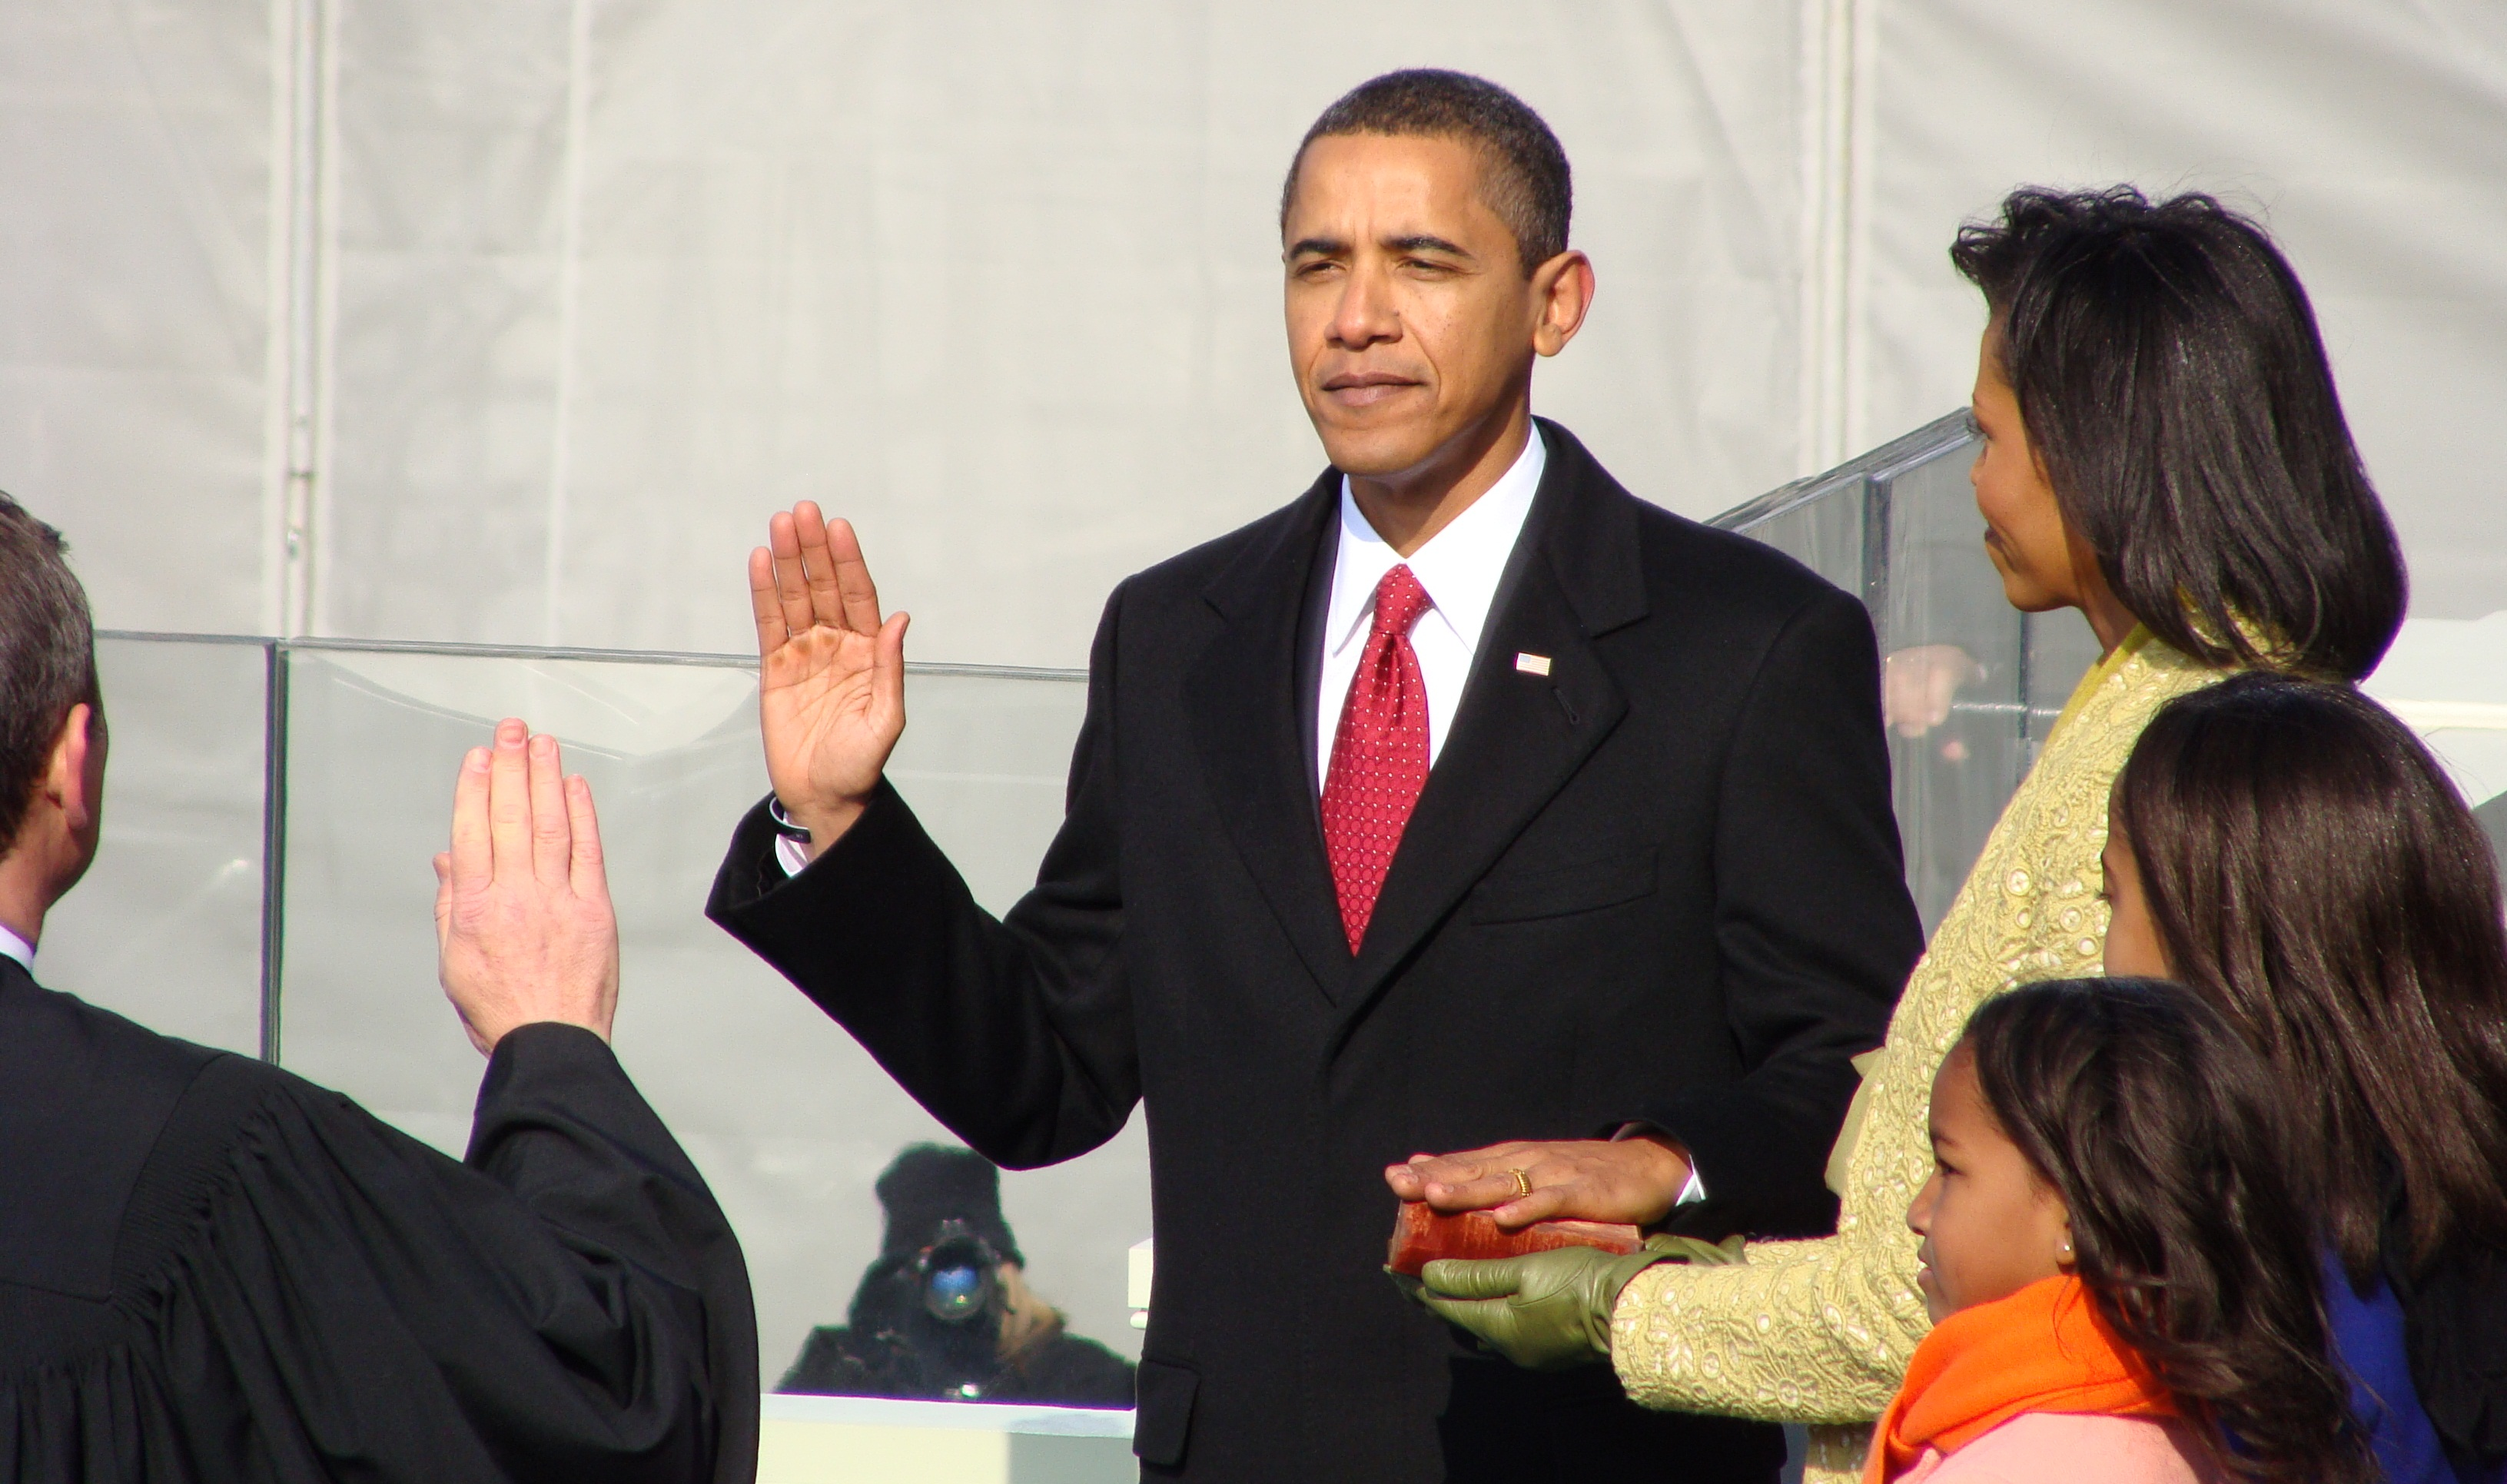 Barack Obama Being Sworn In With Hand On Lincoln's Bible